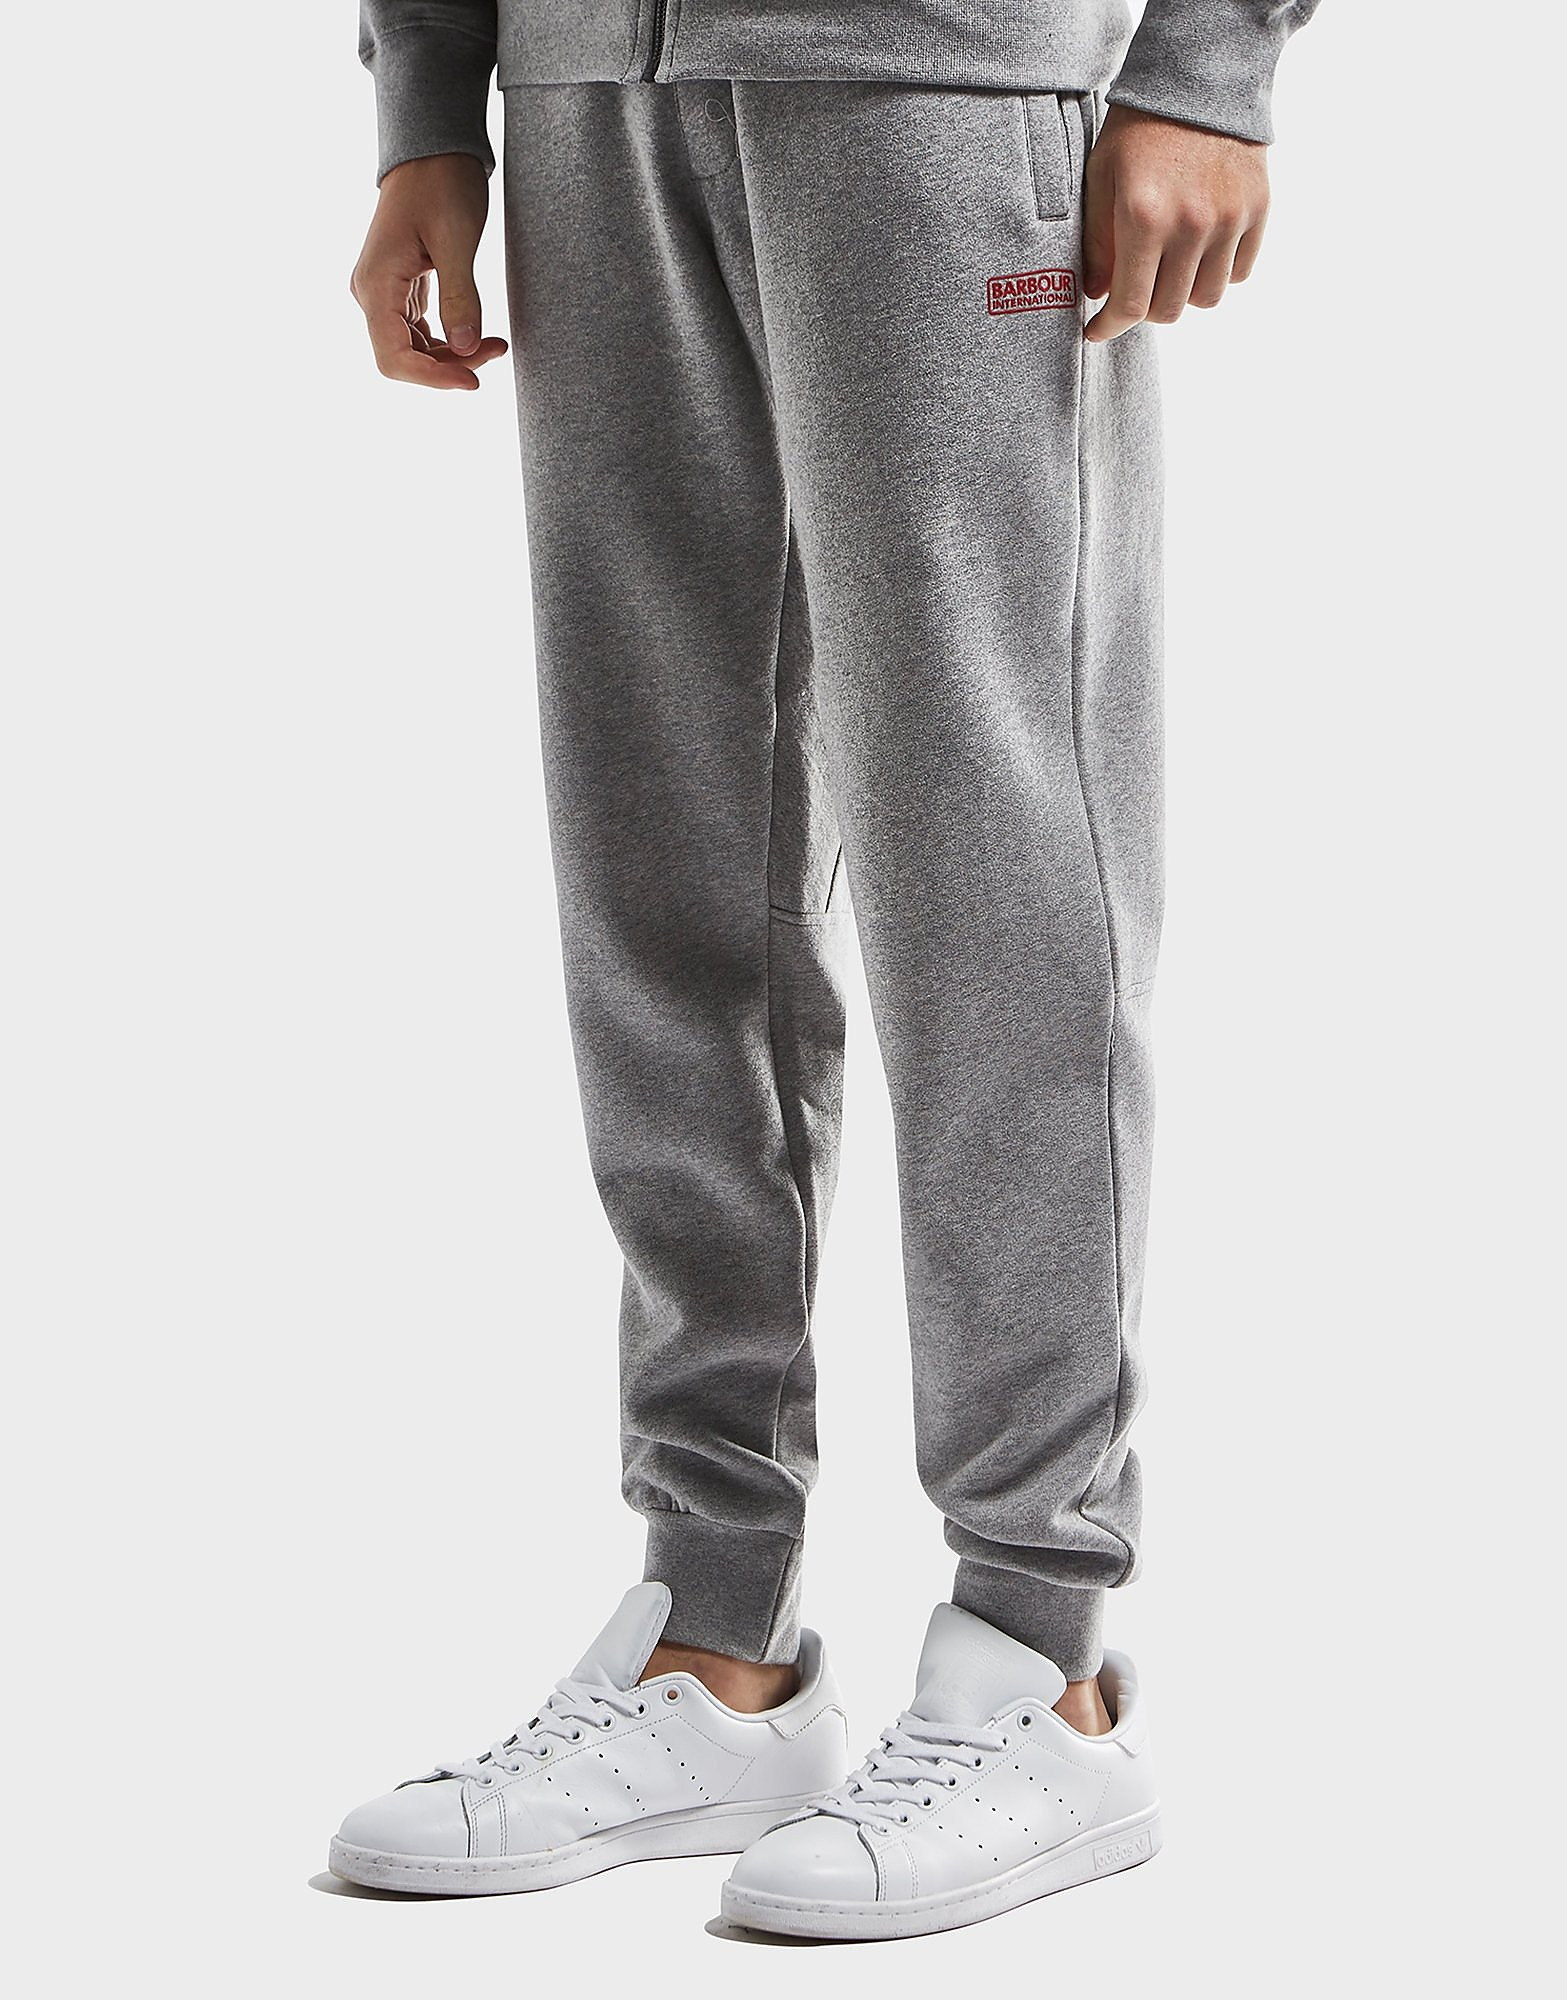 Barbour International Fleece Cuffed Track Pant - Exclusive